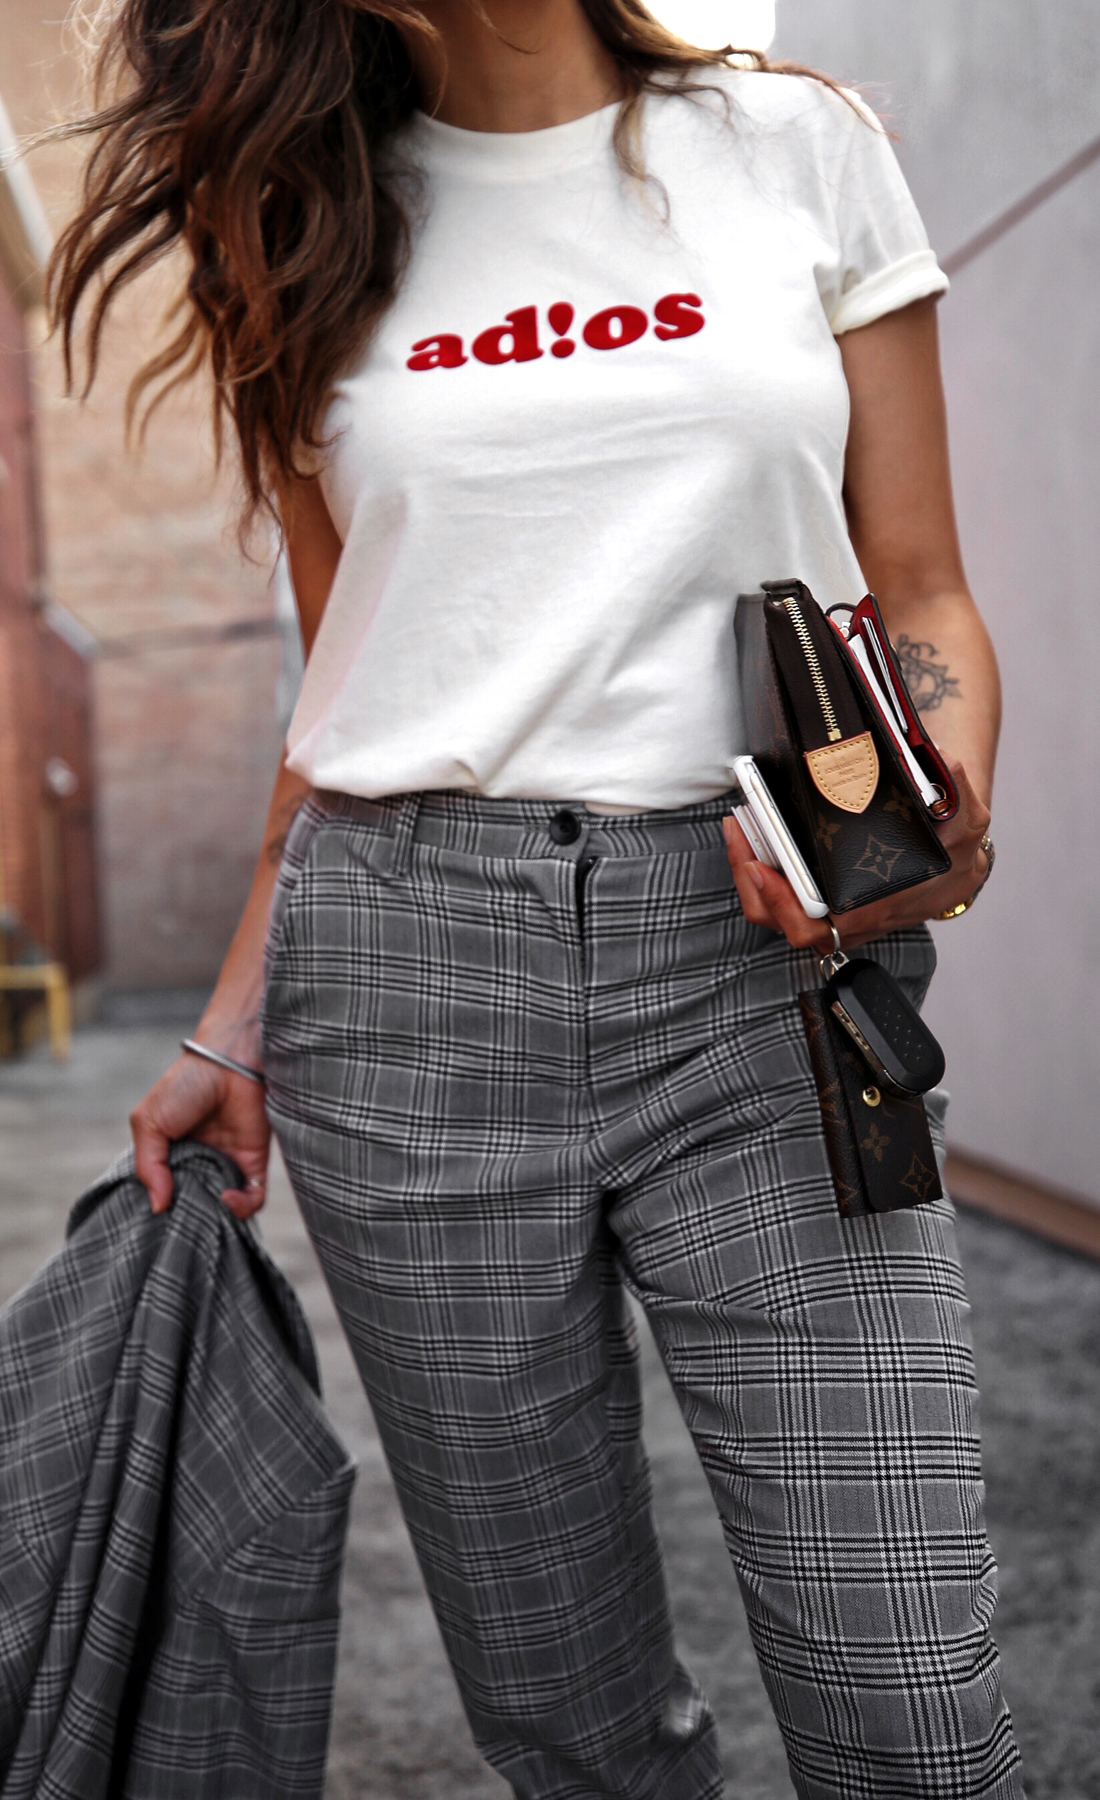 fw18 street style plaid suit women - menswear inspired - nordstrom - alexander wang Orange red AW BBall Soccer Sneakers, louis vuitton small agenda 4.JPG